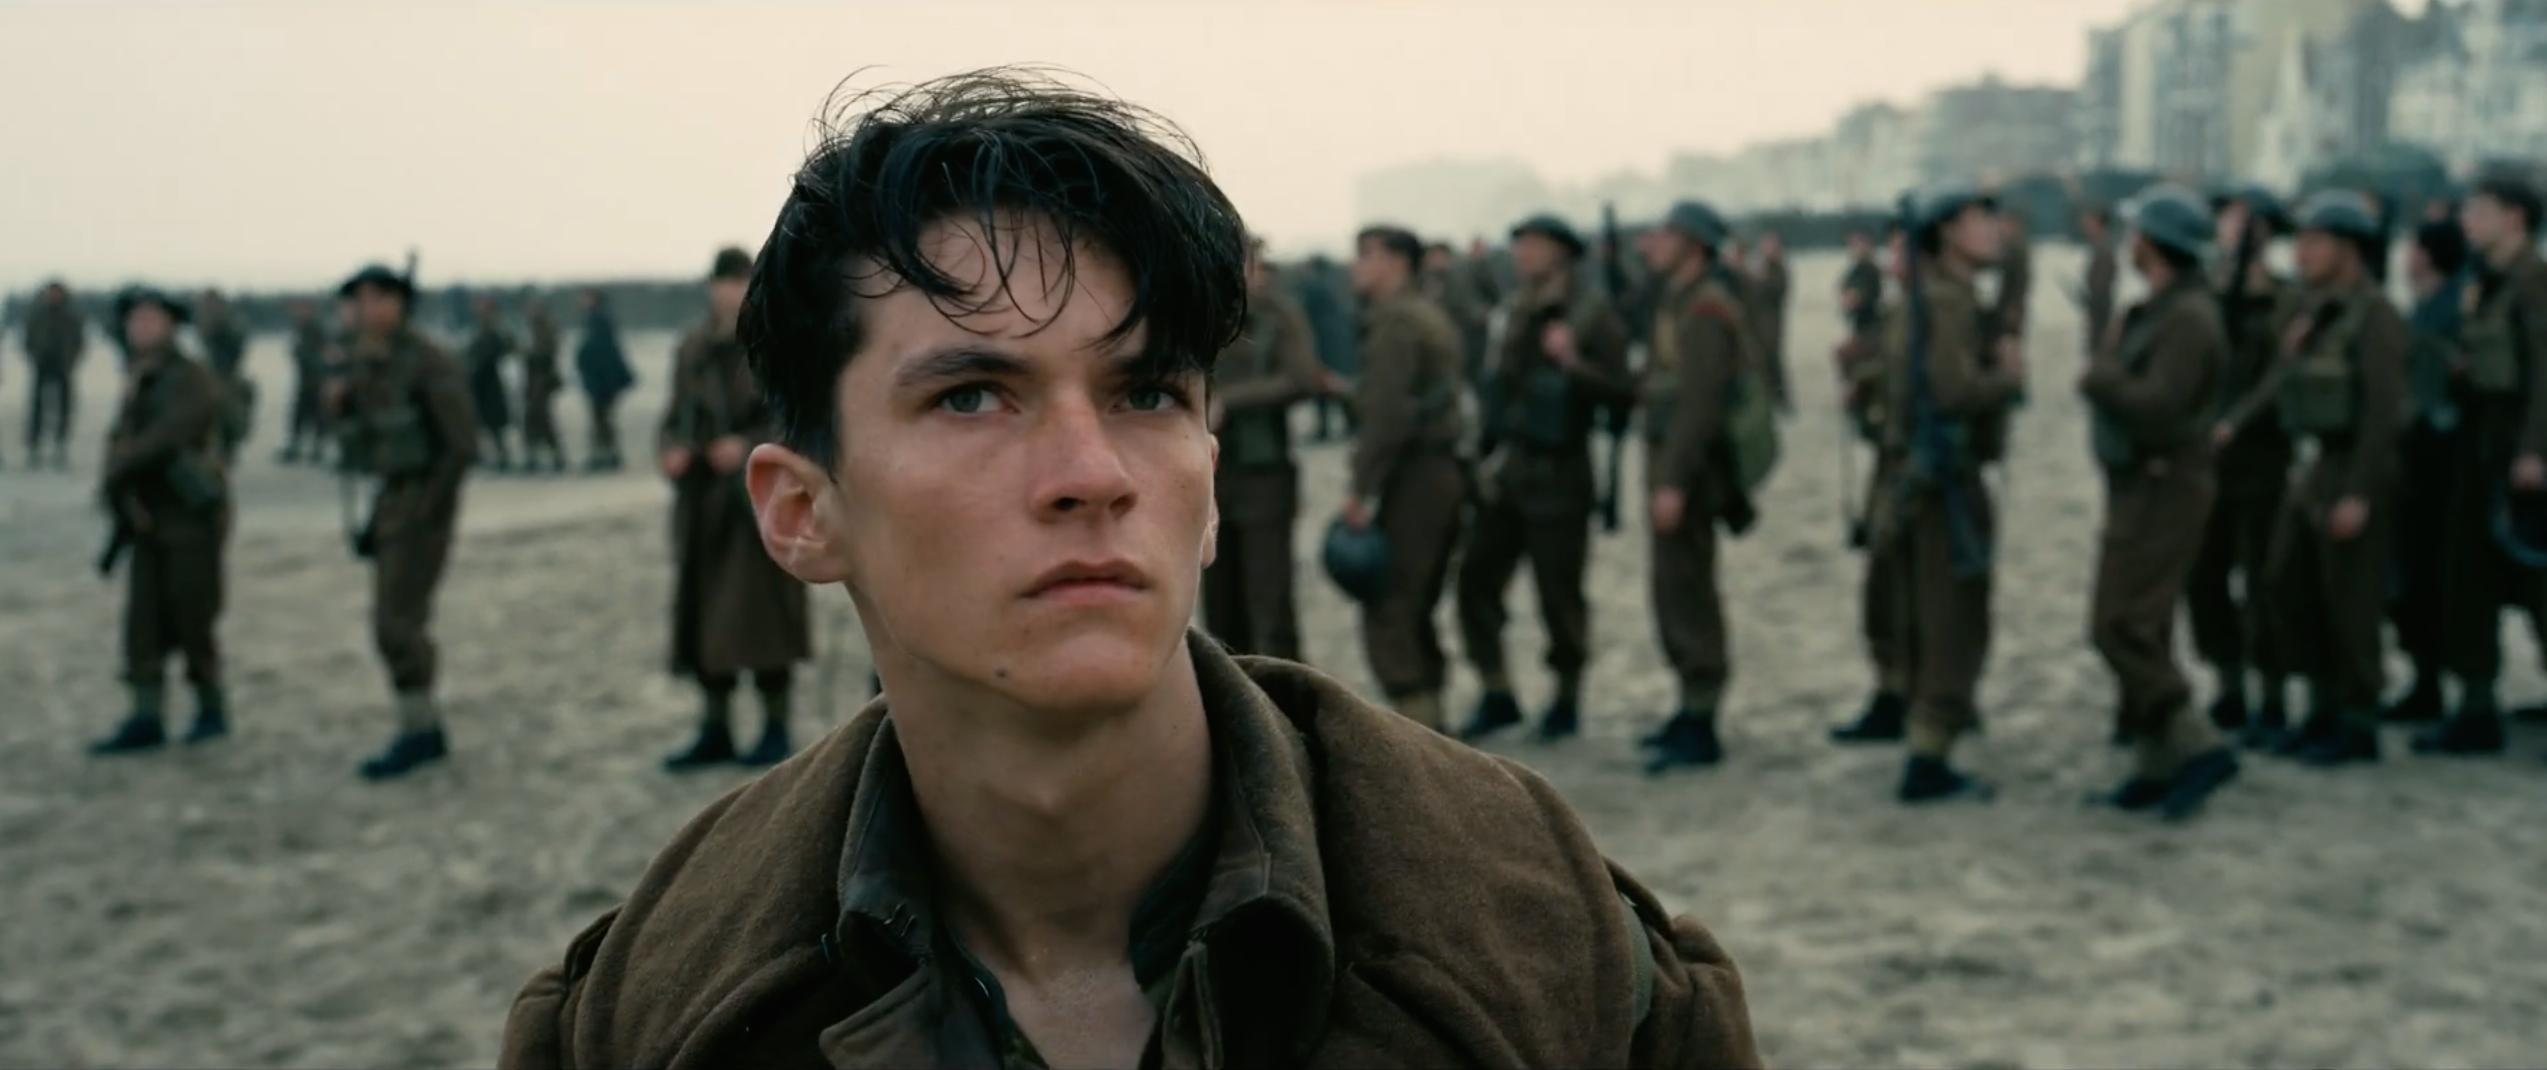 http://revista22.ro/files/news/manset/default/foto-dunkirk-1.jpg